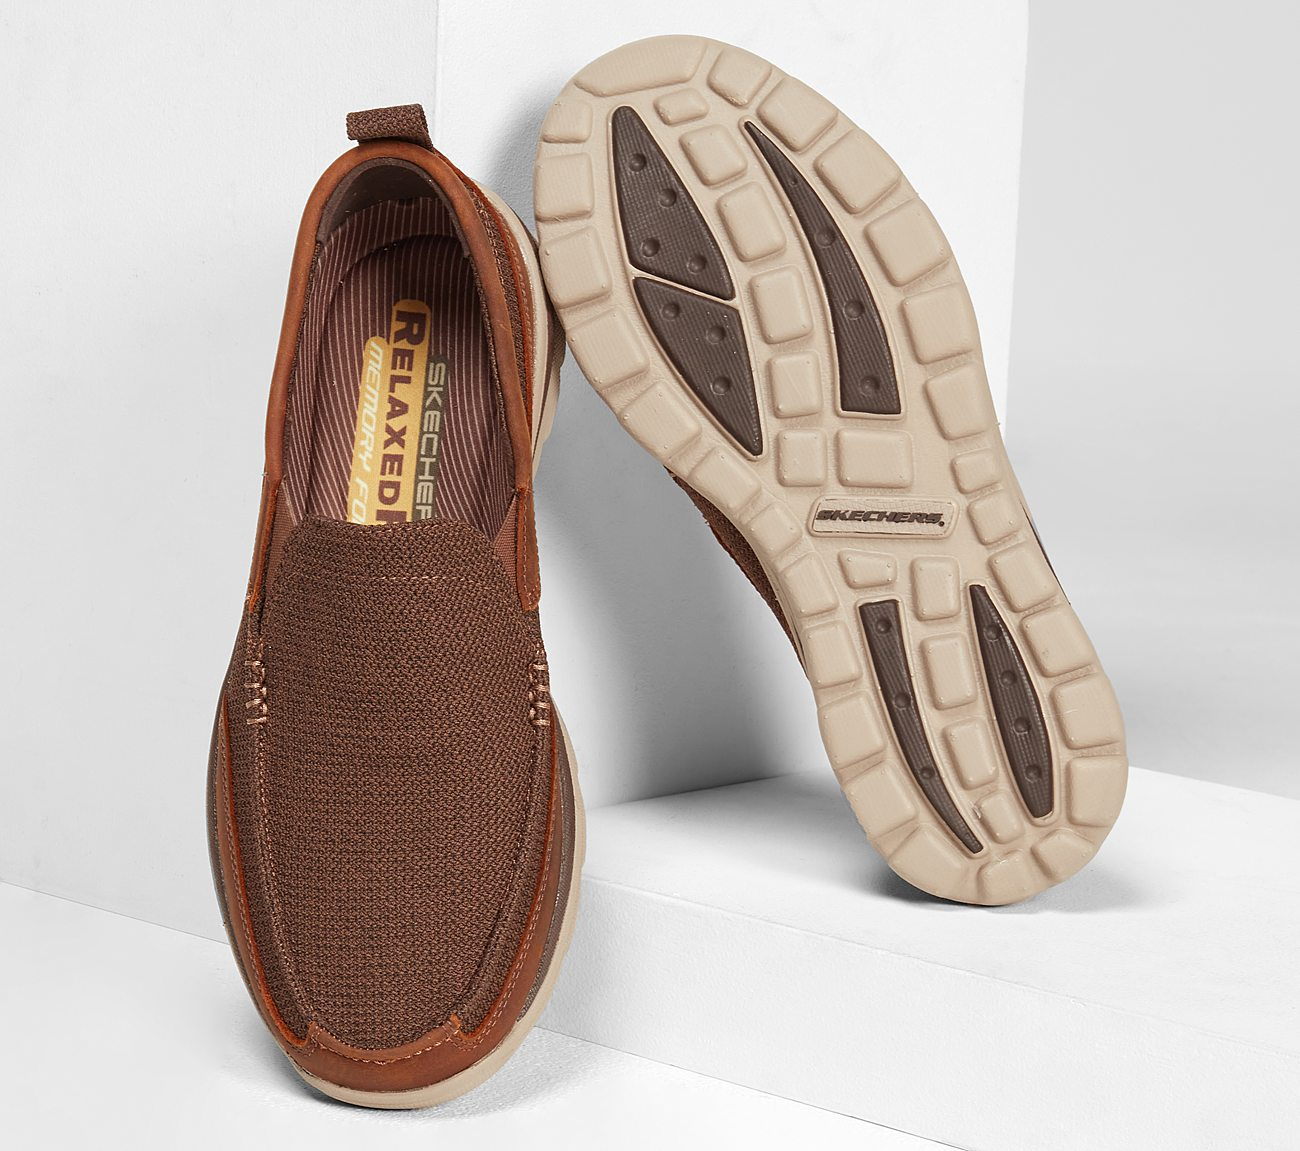 cba0683e Buy SKECHERS Relaxed Fit: Superior - Milford Modern Comfort Shoes ...